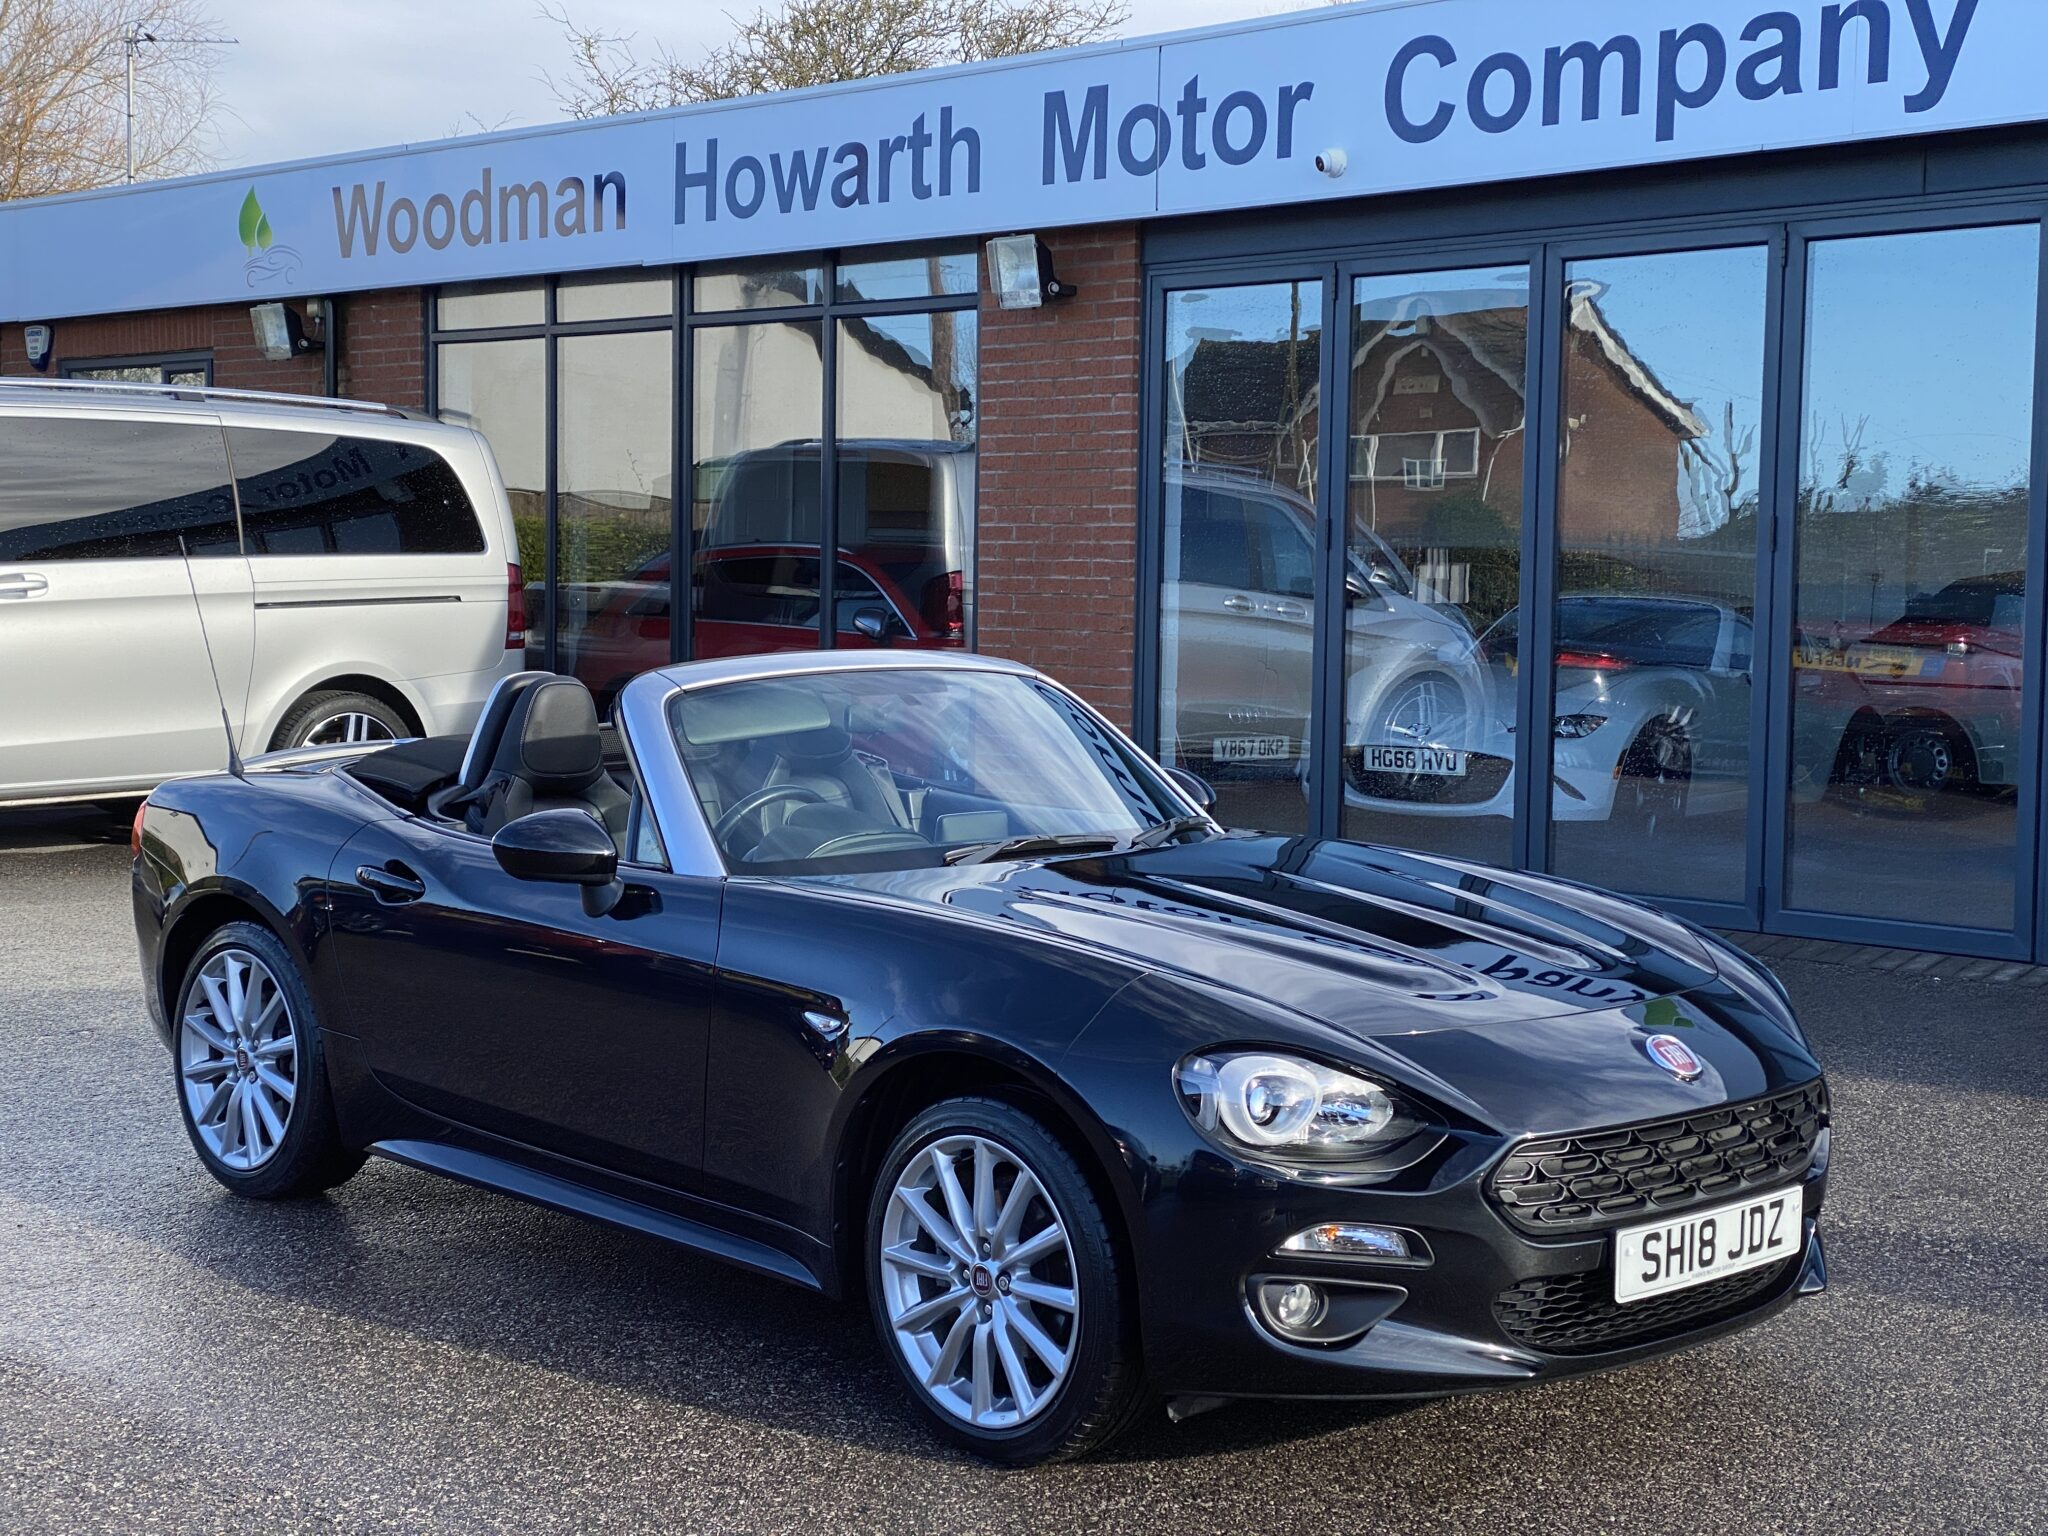 2018 18 FIAT 124 SPIDER 1.4 MULTIAIR LUSSO CONVERTIBLE Only 12500 Mls Fabulous Open Top Motoring